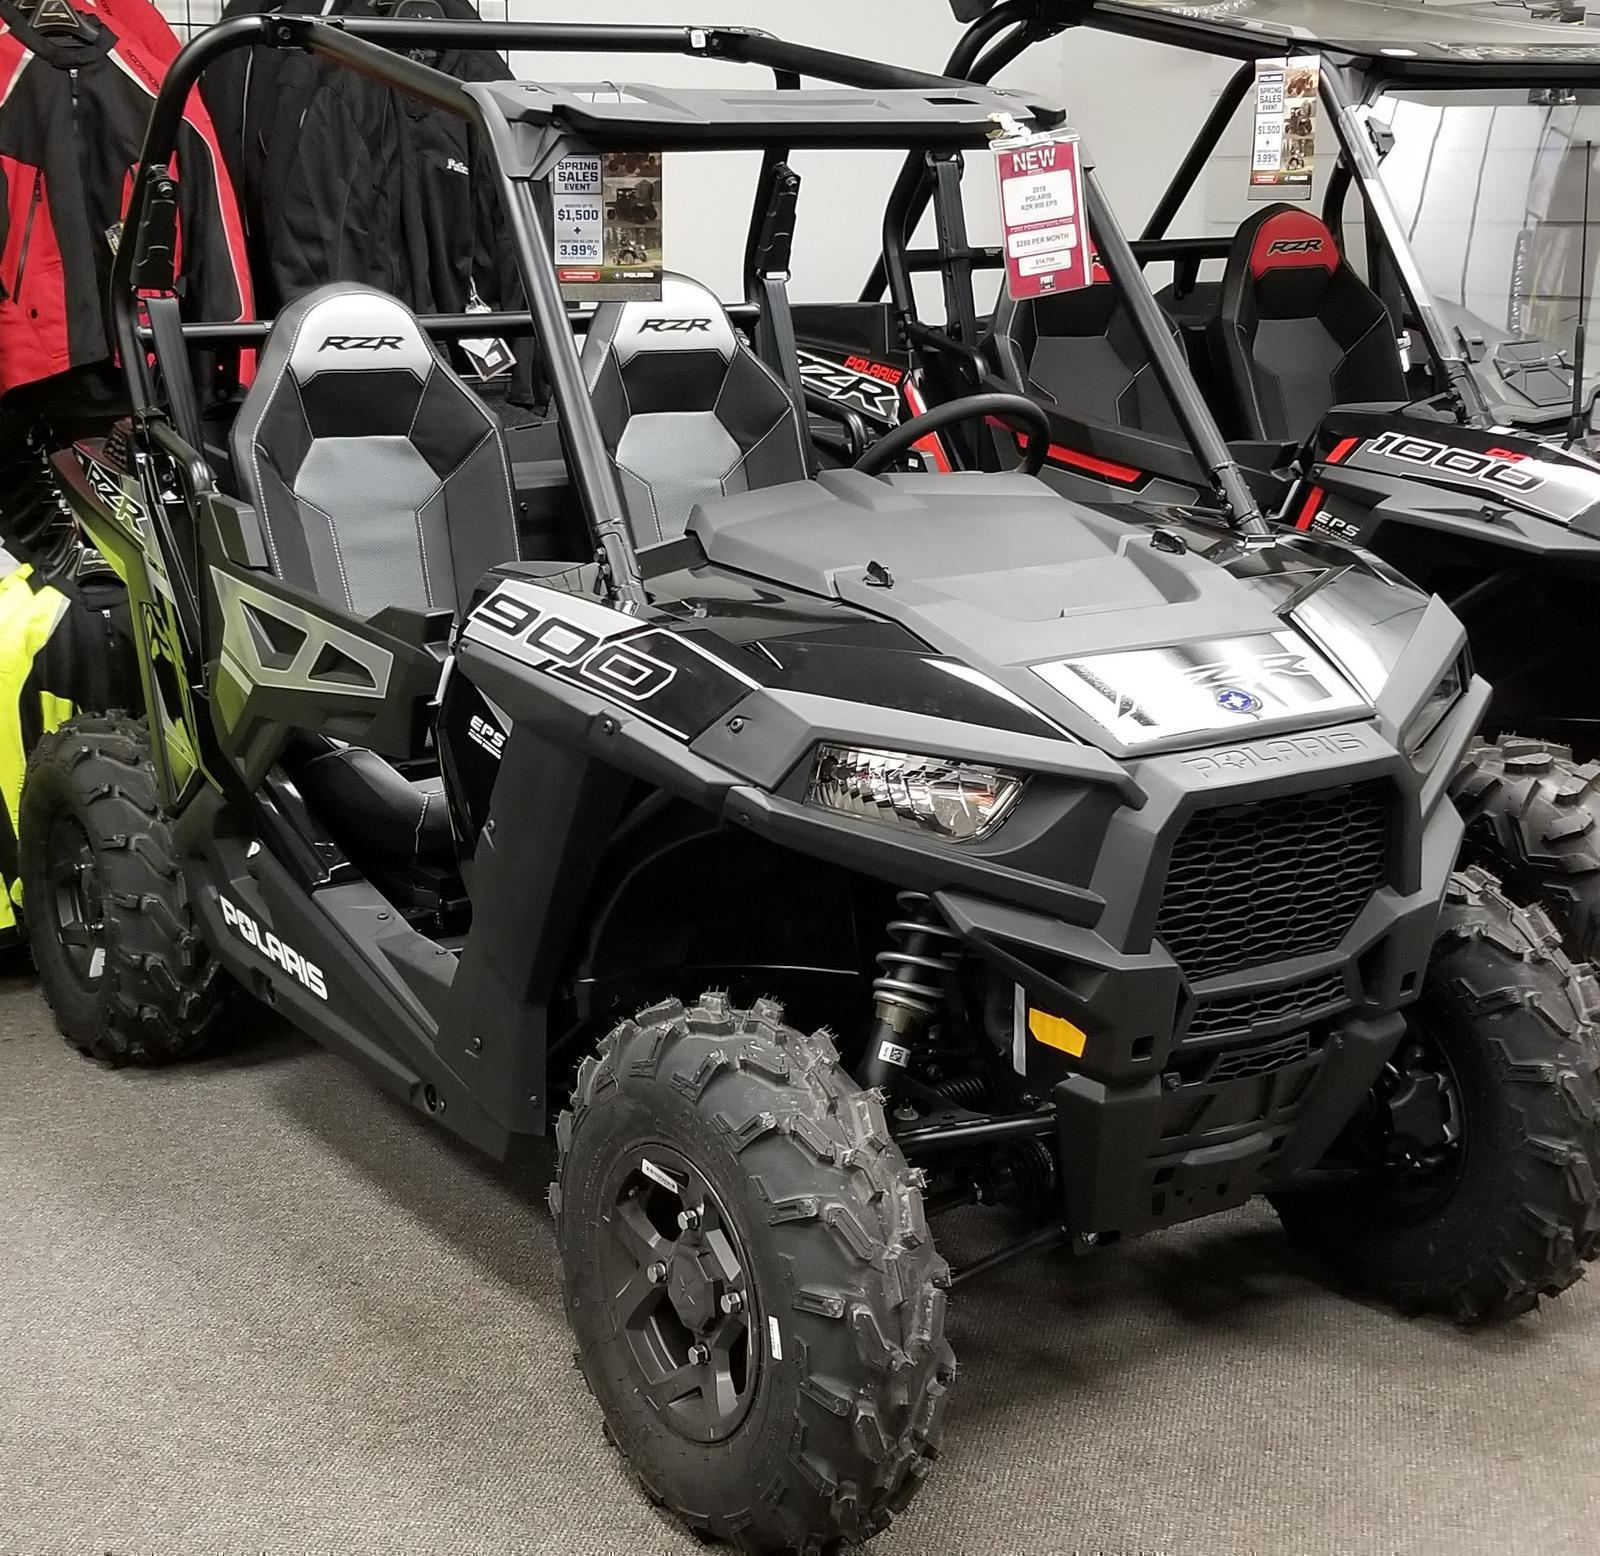 2019 Polaris Industries Rzr 900 Eps For Sale In Mansfield Oh Pony